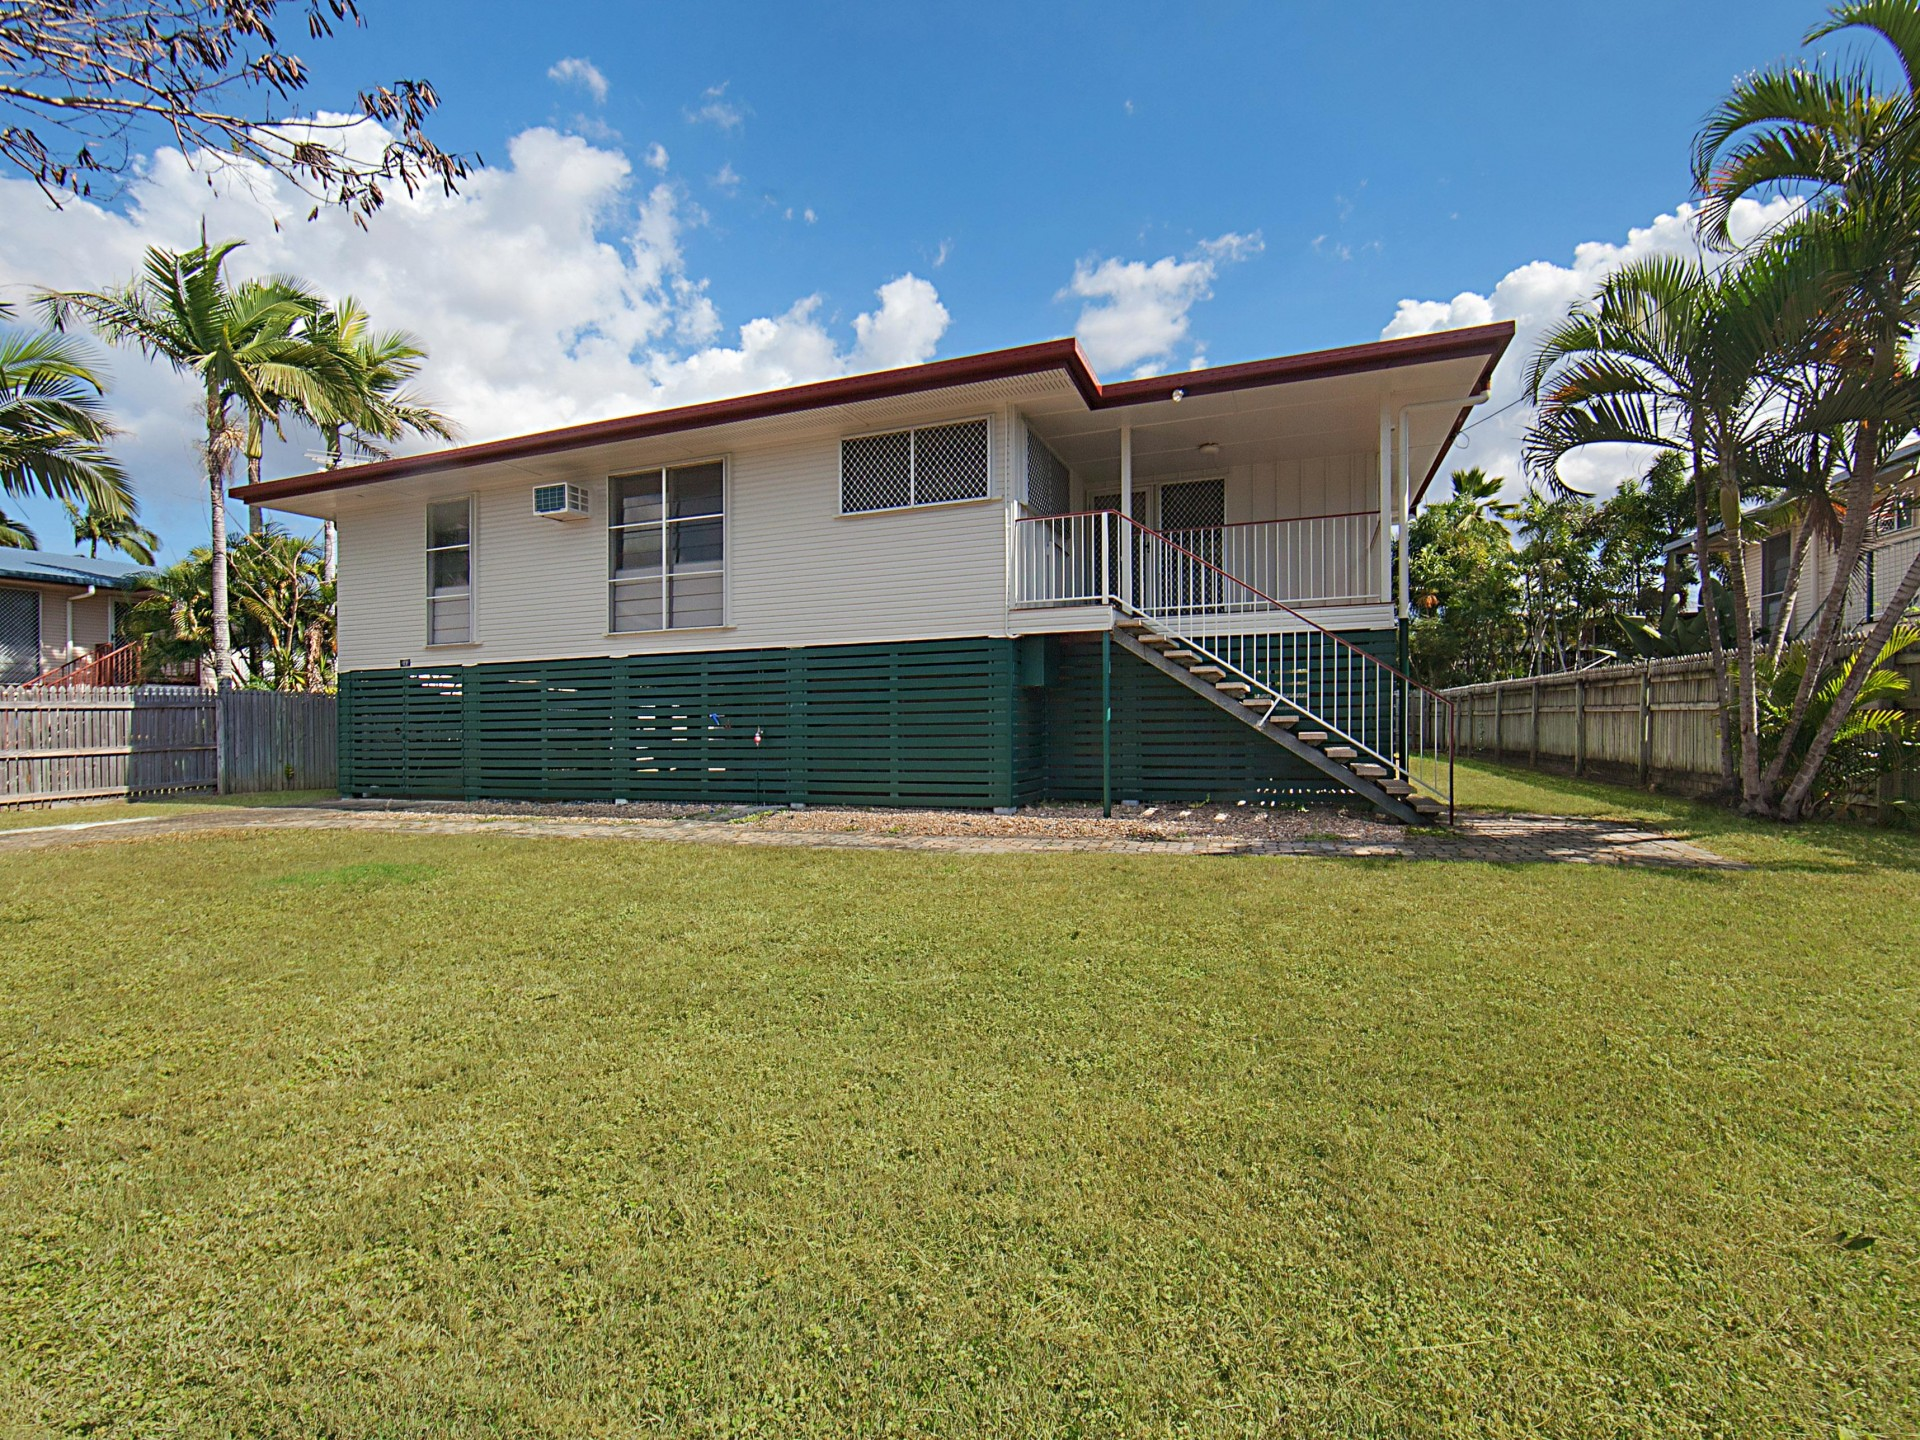 A Cheap Ideally Located Family Home